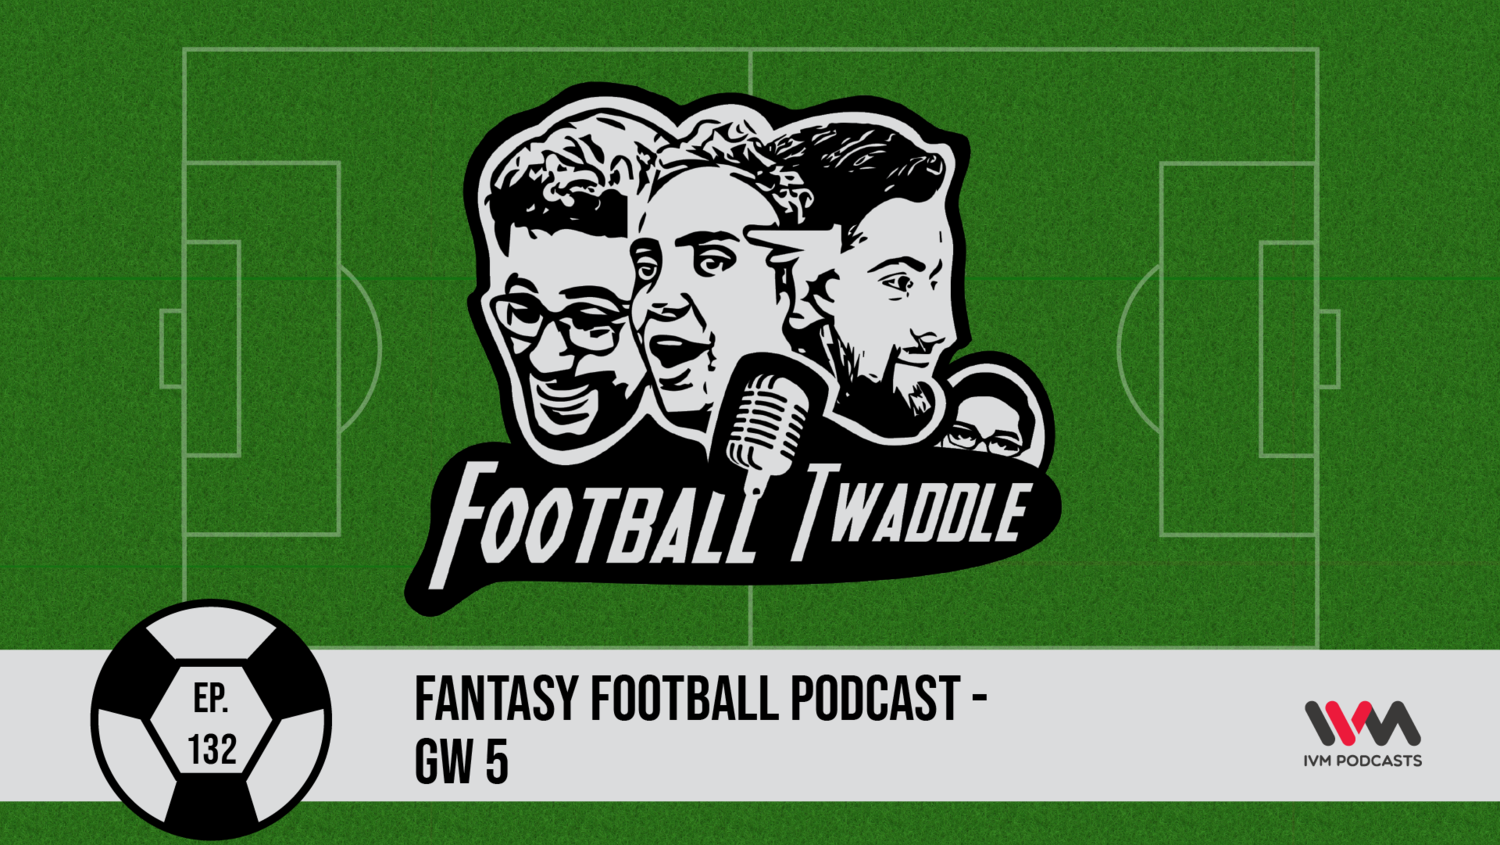 FootballTwaddleEpisode132.png